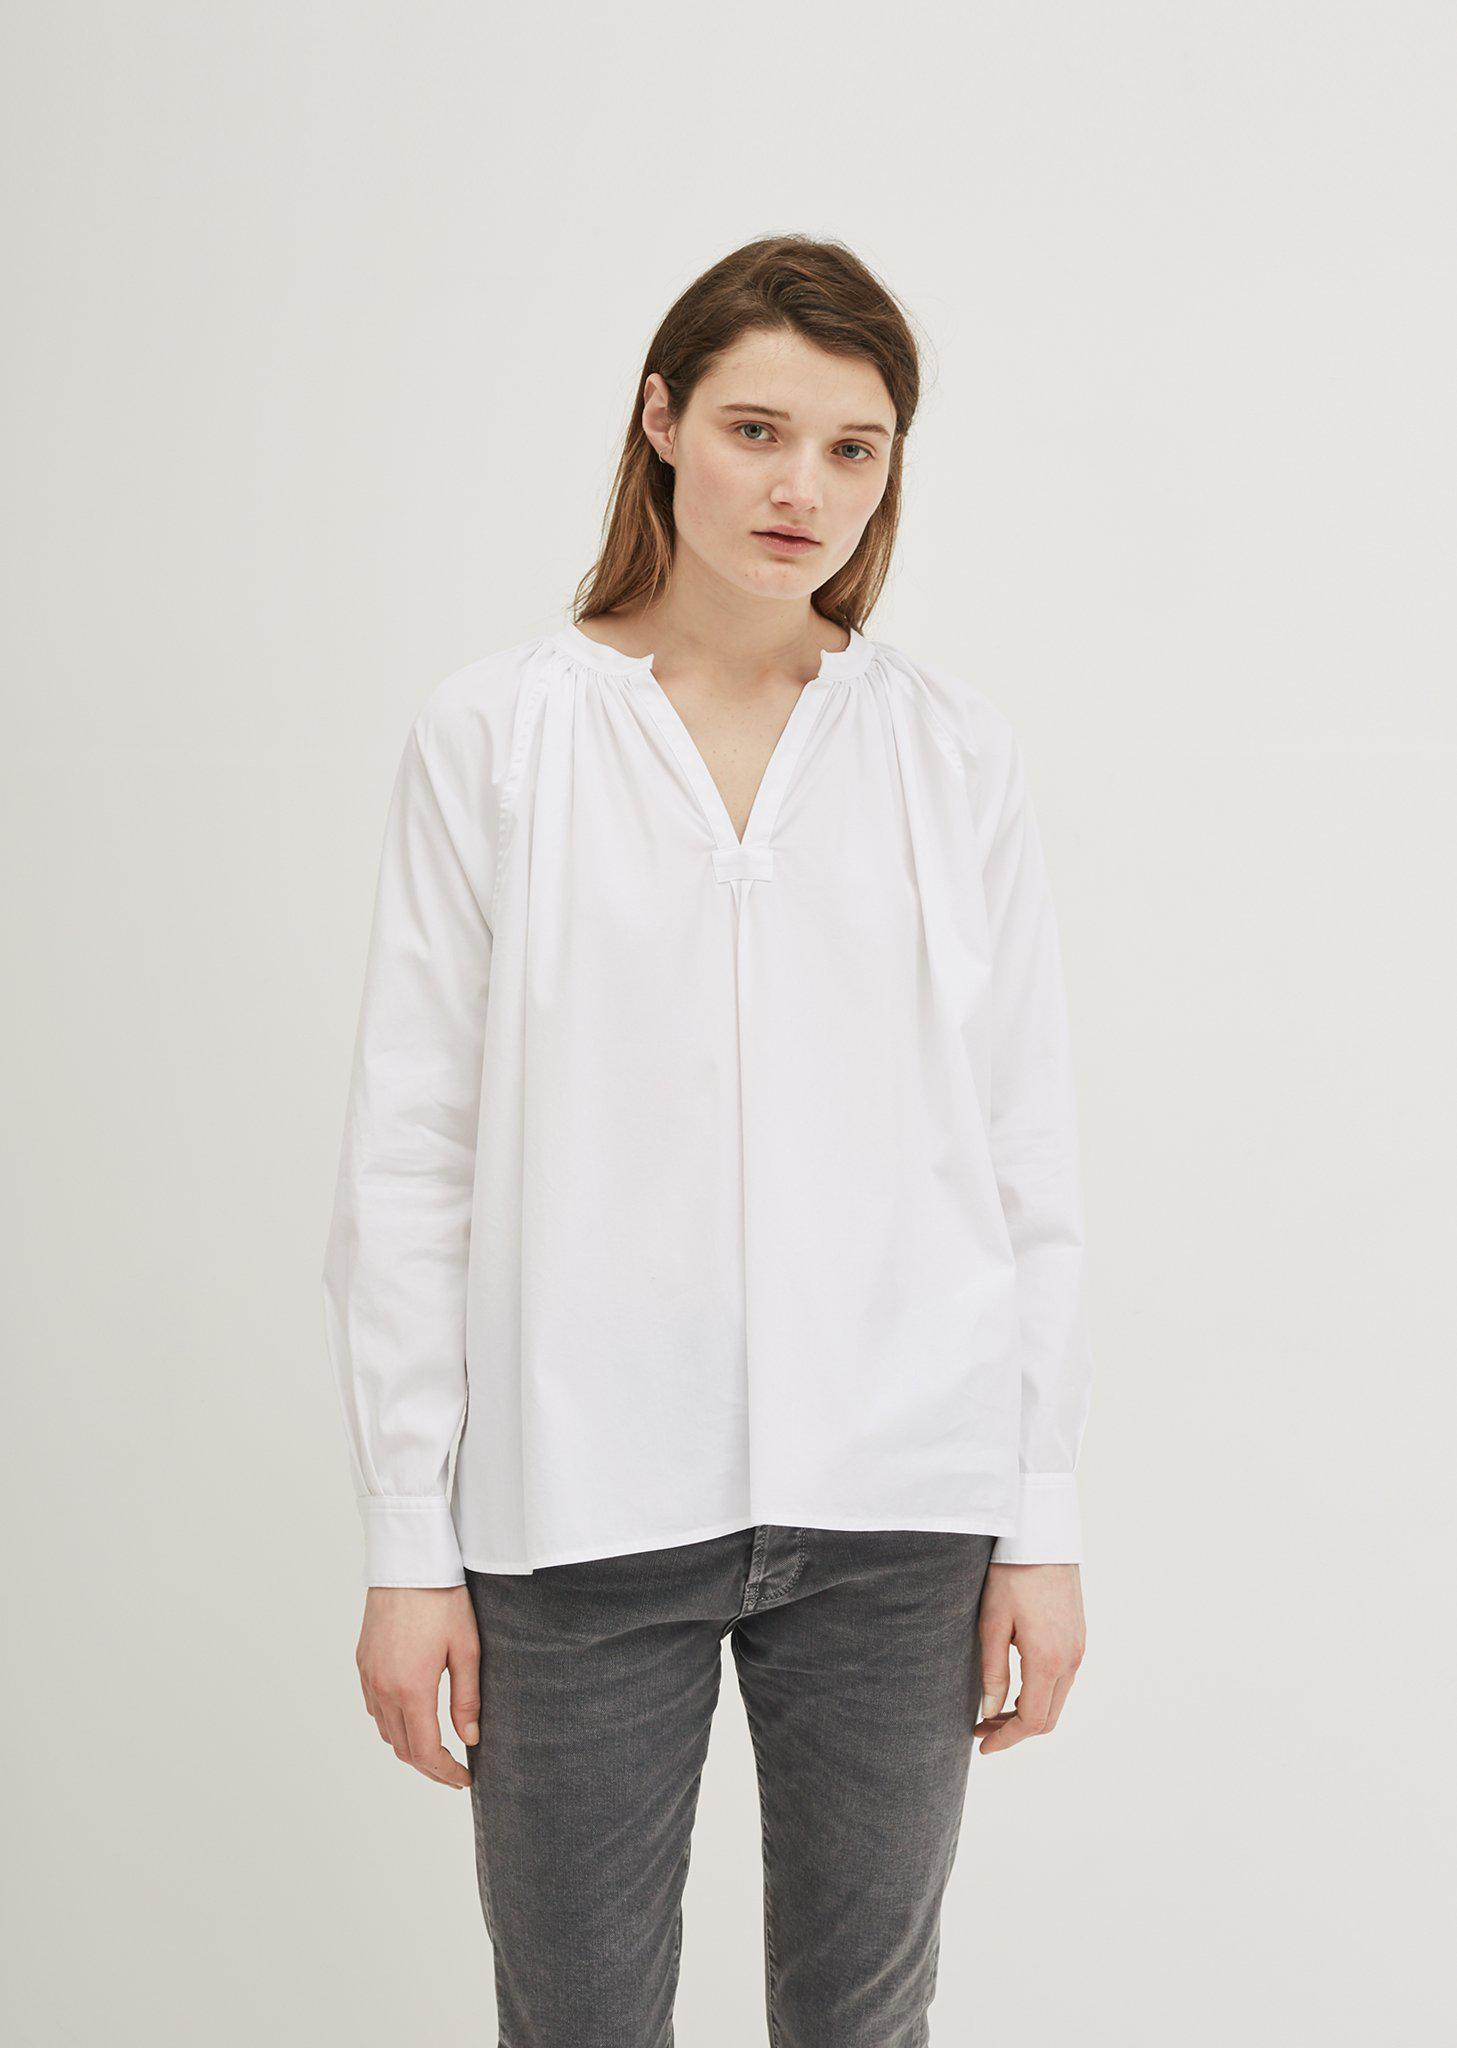 White Trapeze Shirt 6397 Buy Cheap Many Kinds Of sn0Q2